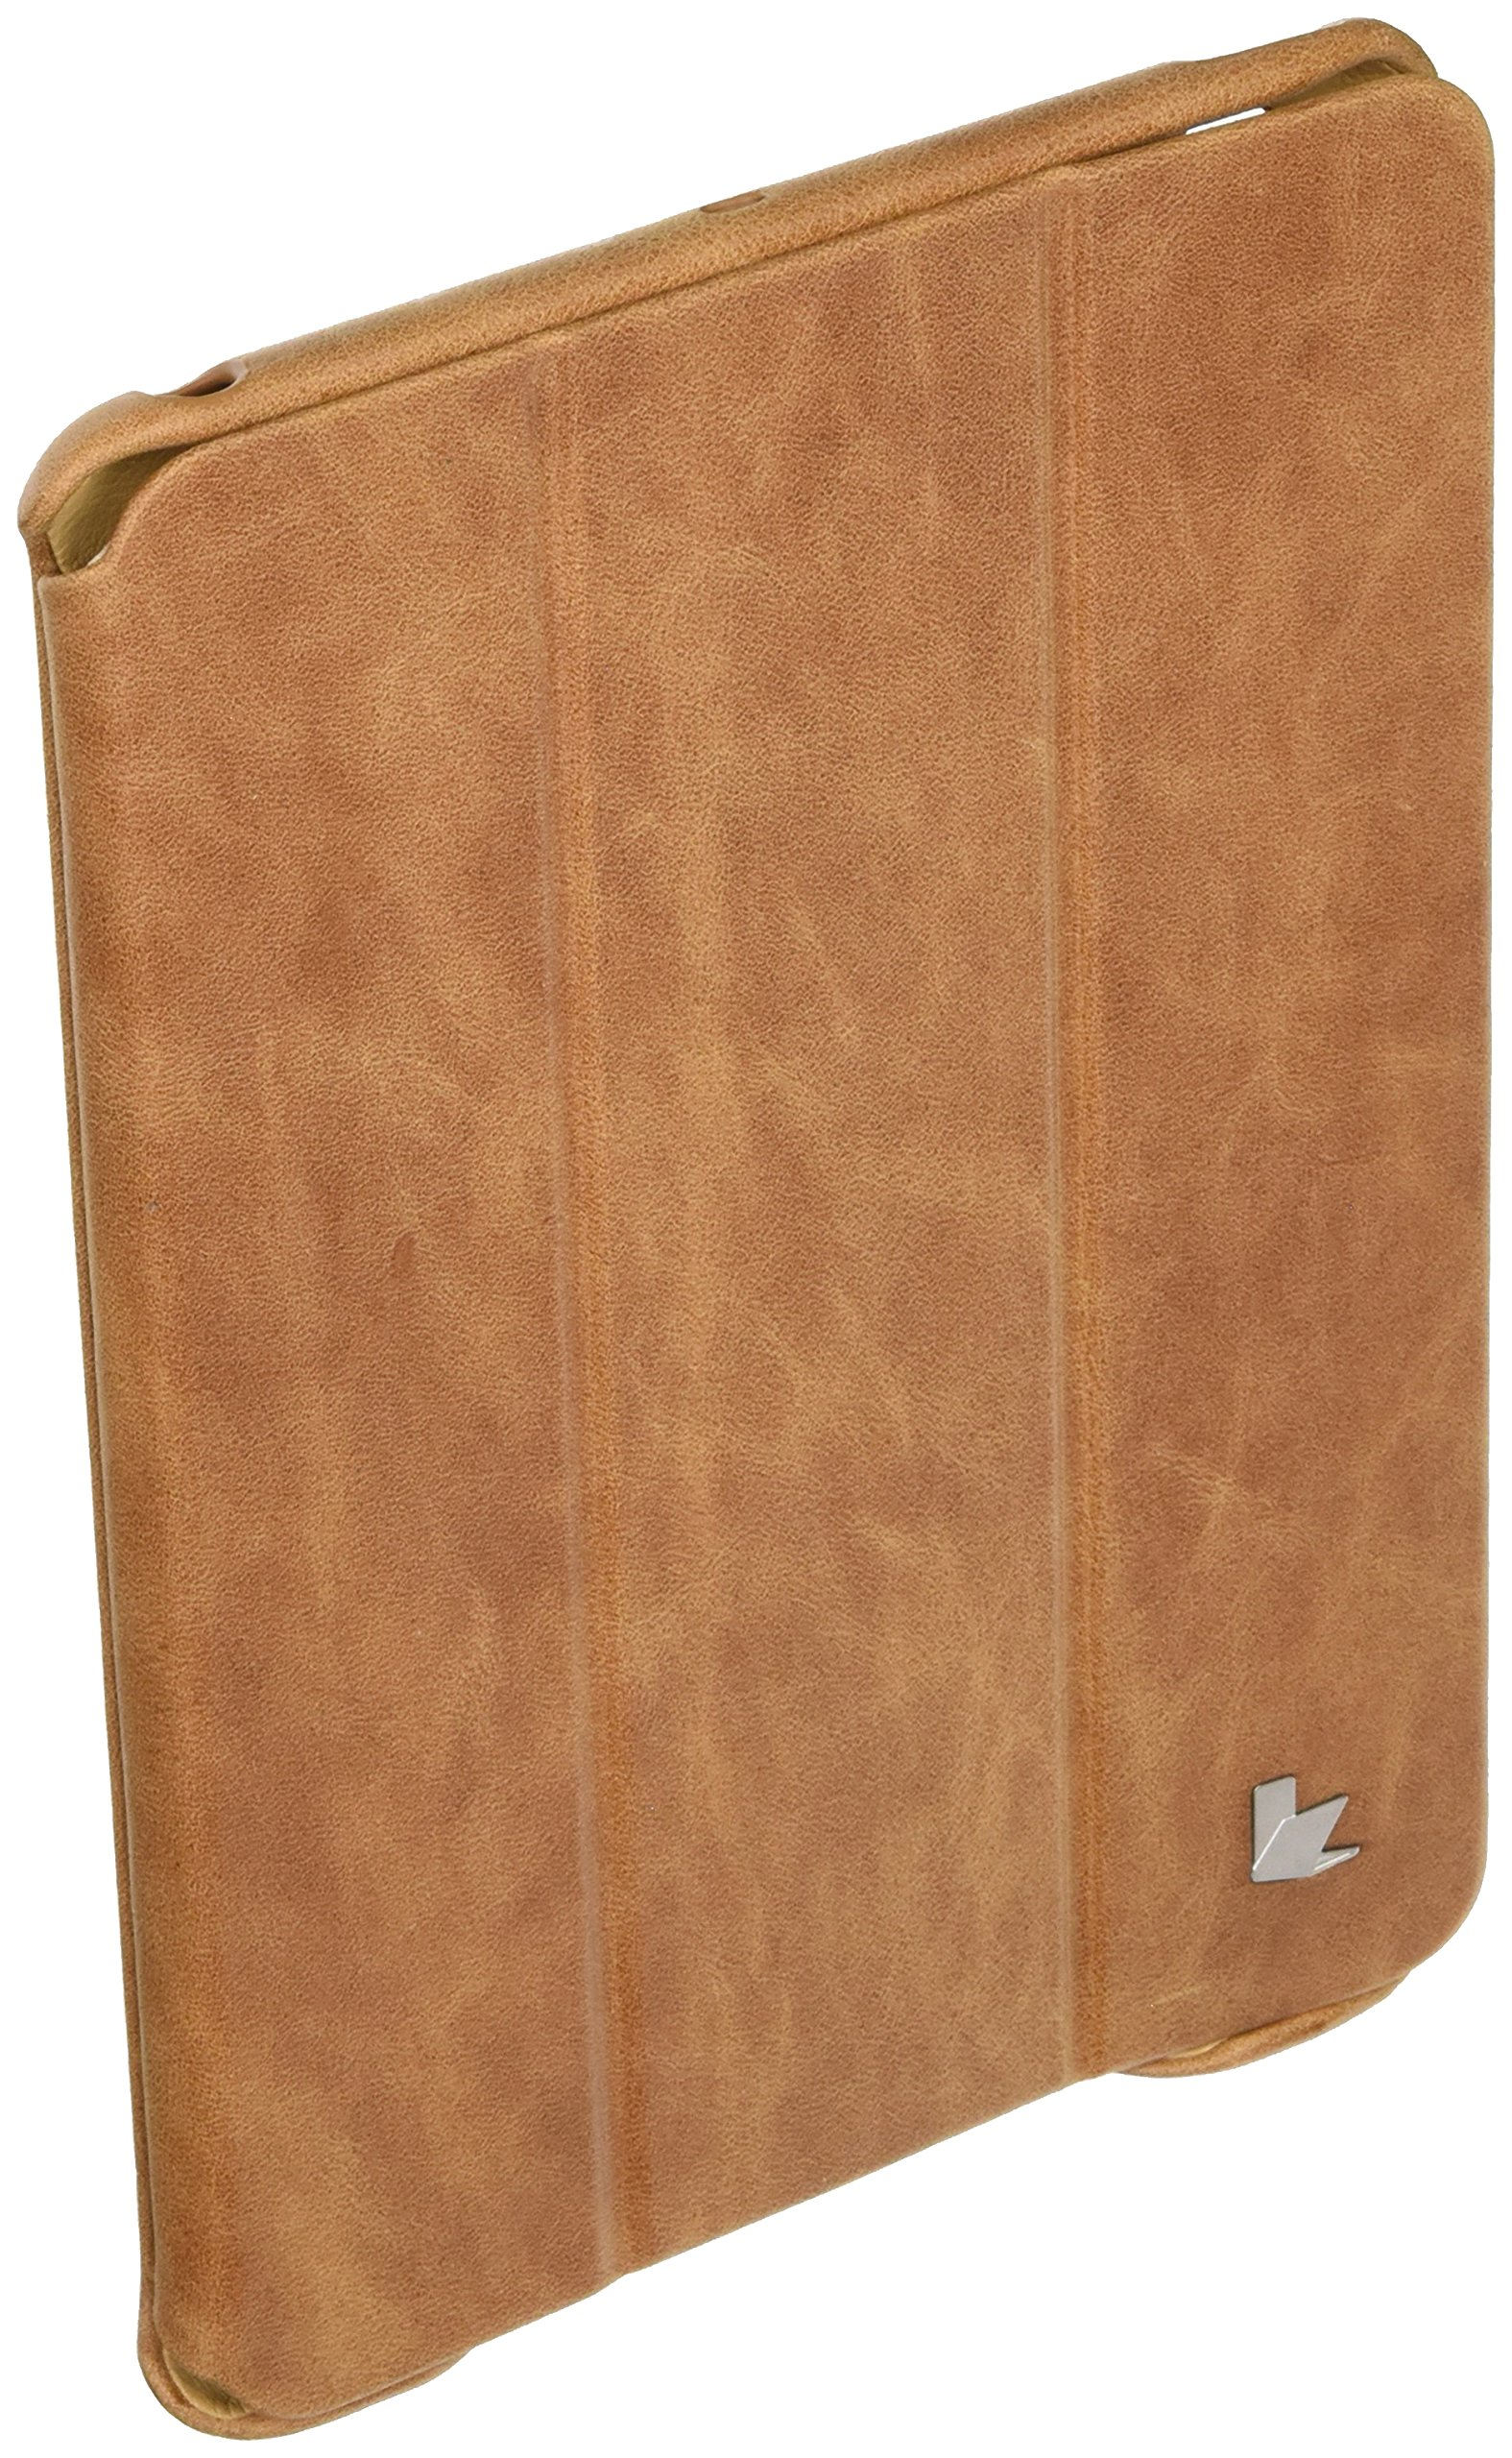 Jisoncase Vintage Genuine Leather Smart Cover Case for iPad mini with Retina Display (JS-IM2-01A20)